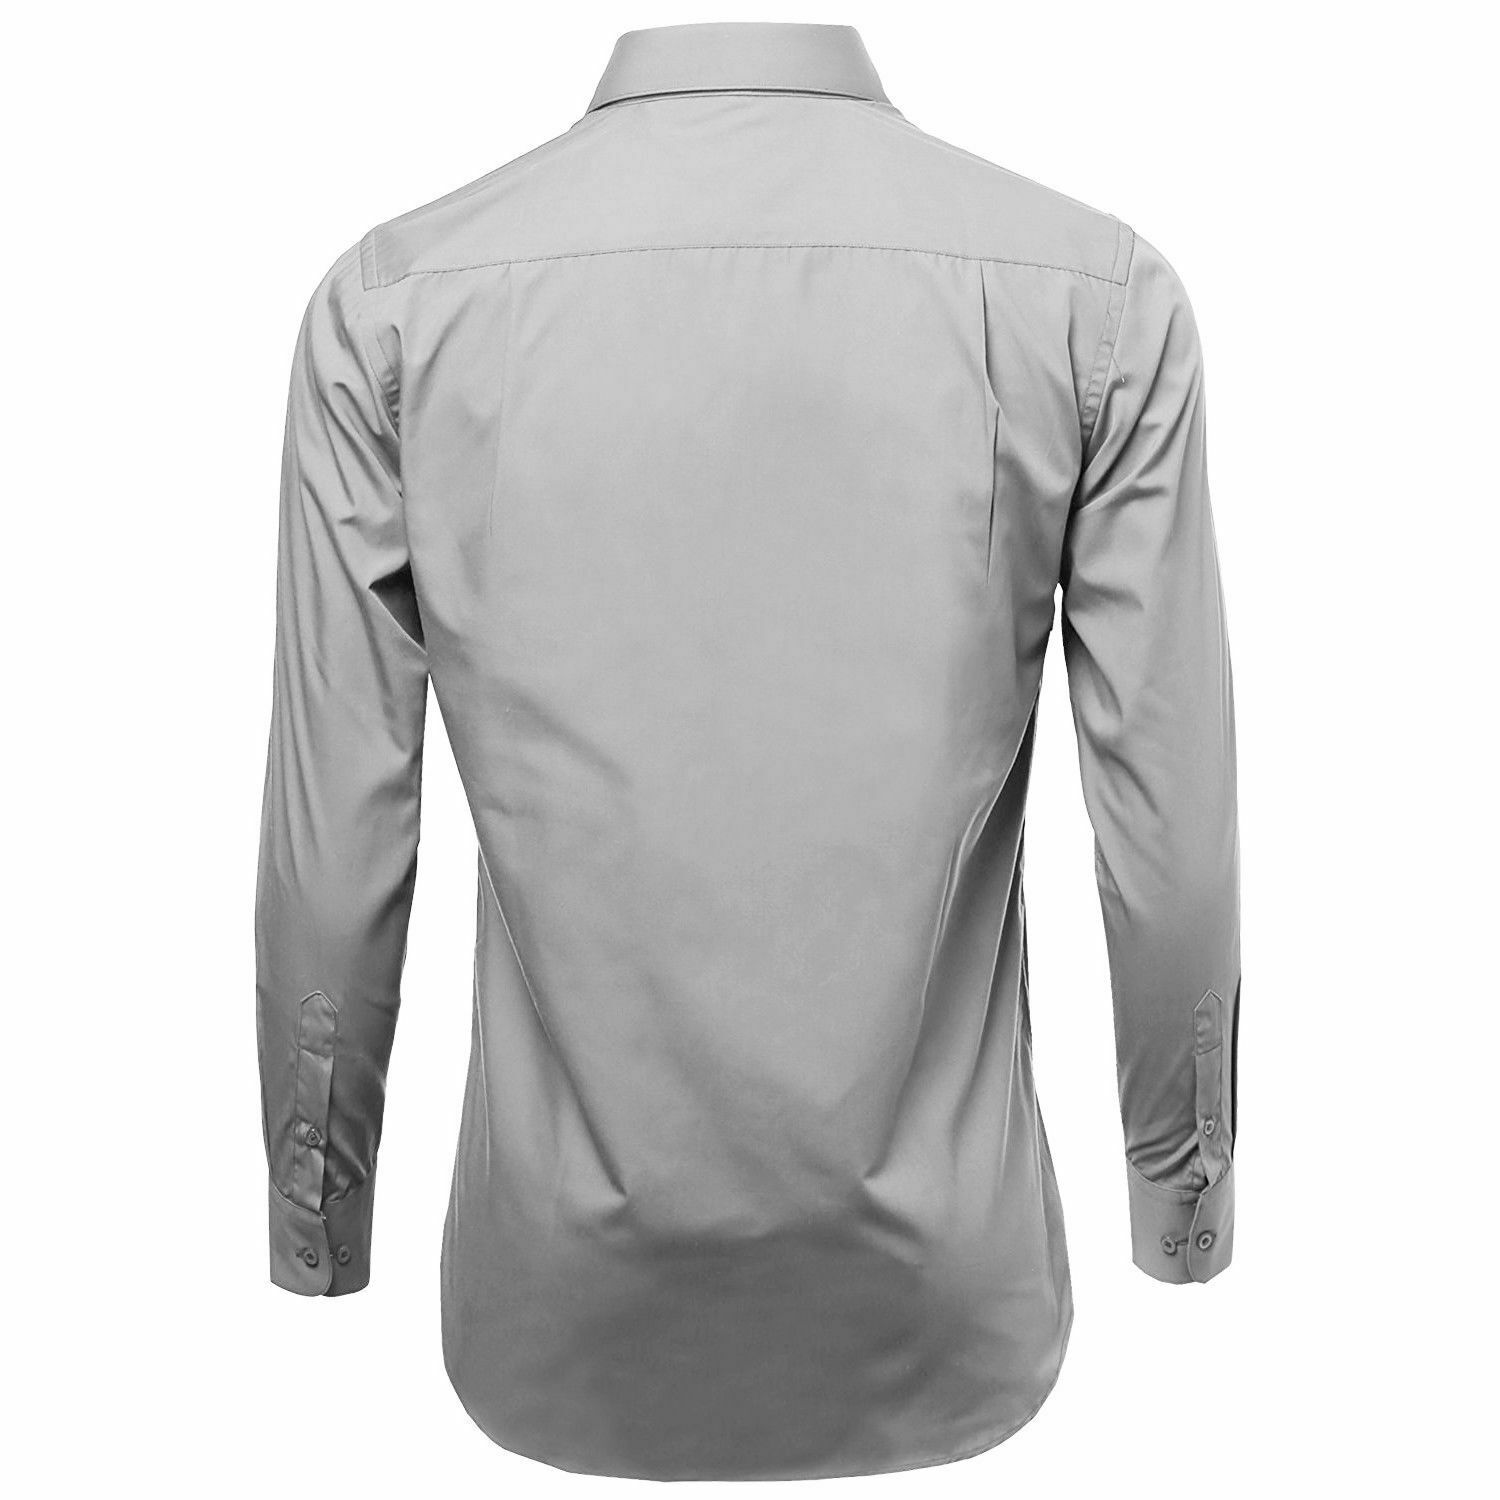 Omega-Italy-Men-039-s-Premium-Slim-Fit-Button-Up-Long-Sleeve-Solid-Color-Dress-Shirt thumbnail 44